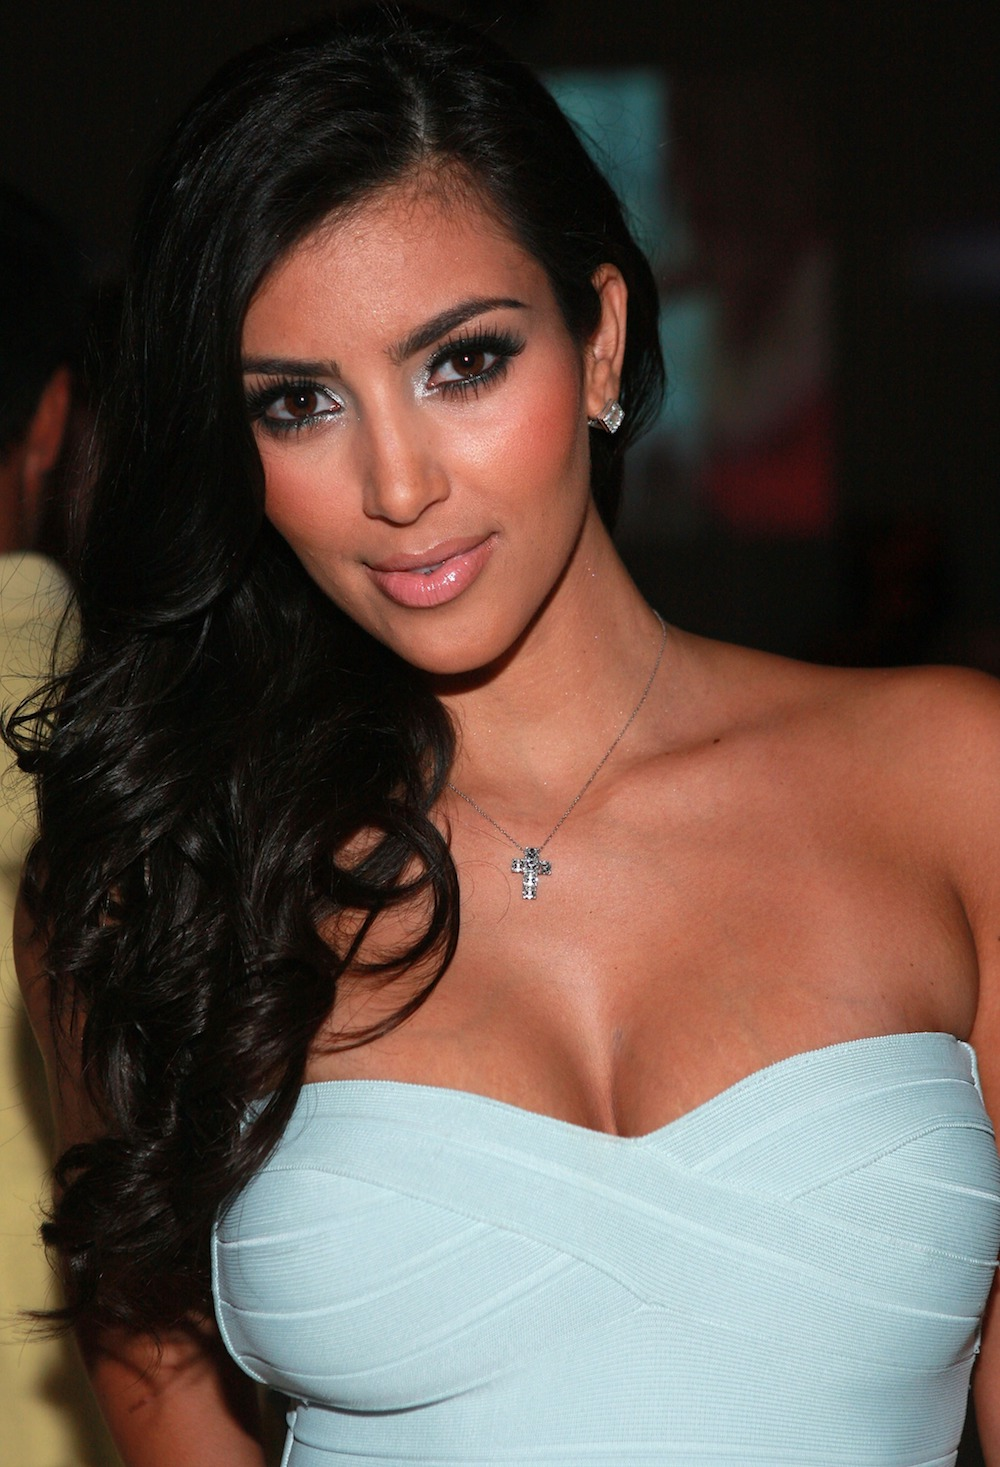 kim-k-necklace-small.jpg